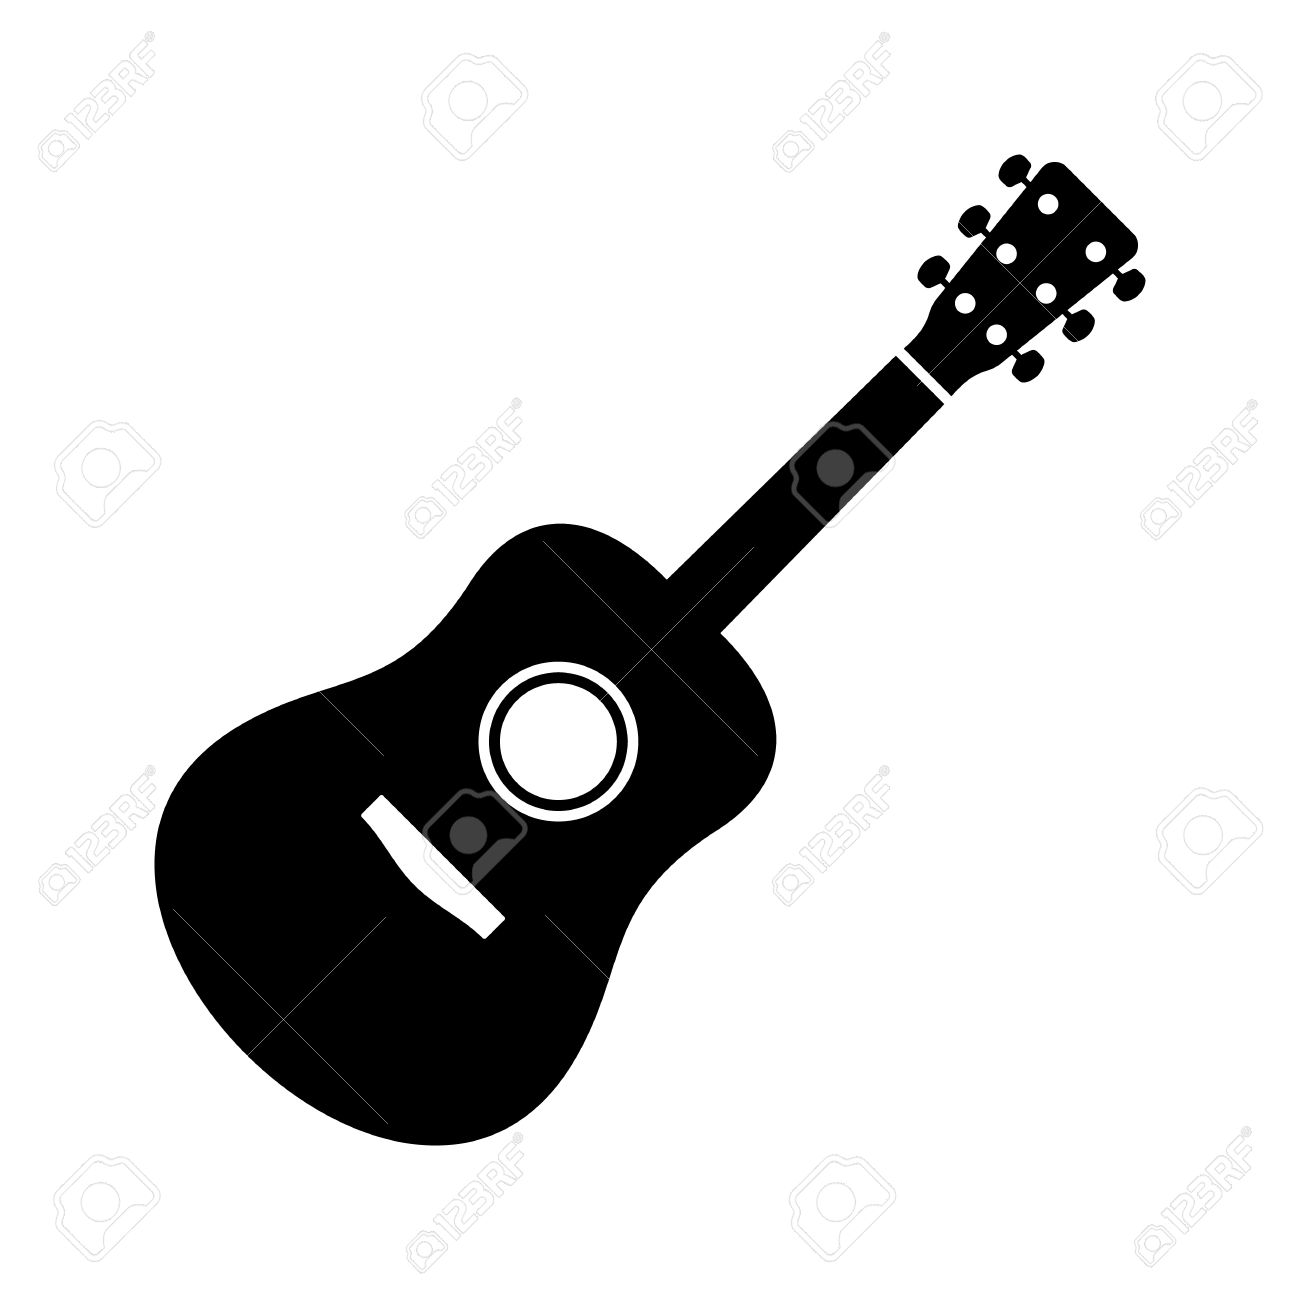 black vector guitar icon isolated on white background royalty free rh 123rf com vector guitar silhouette vector guitar png